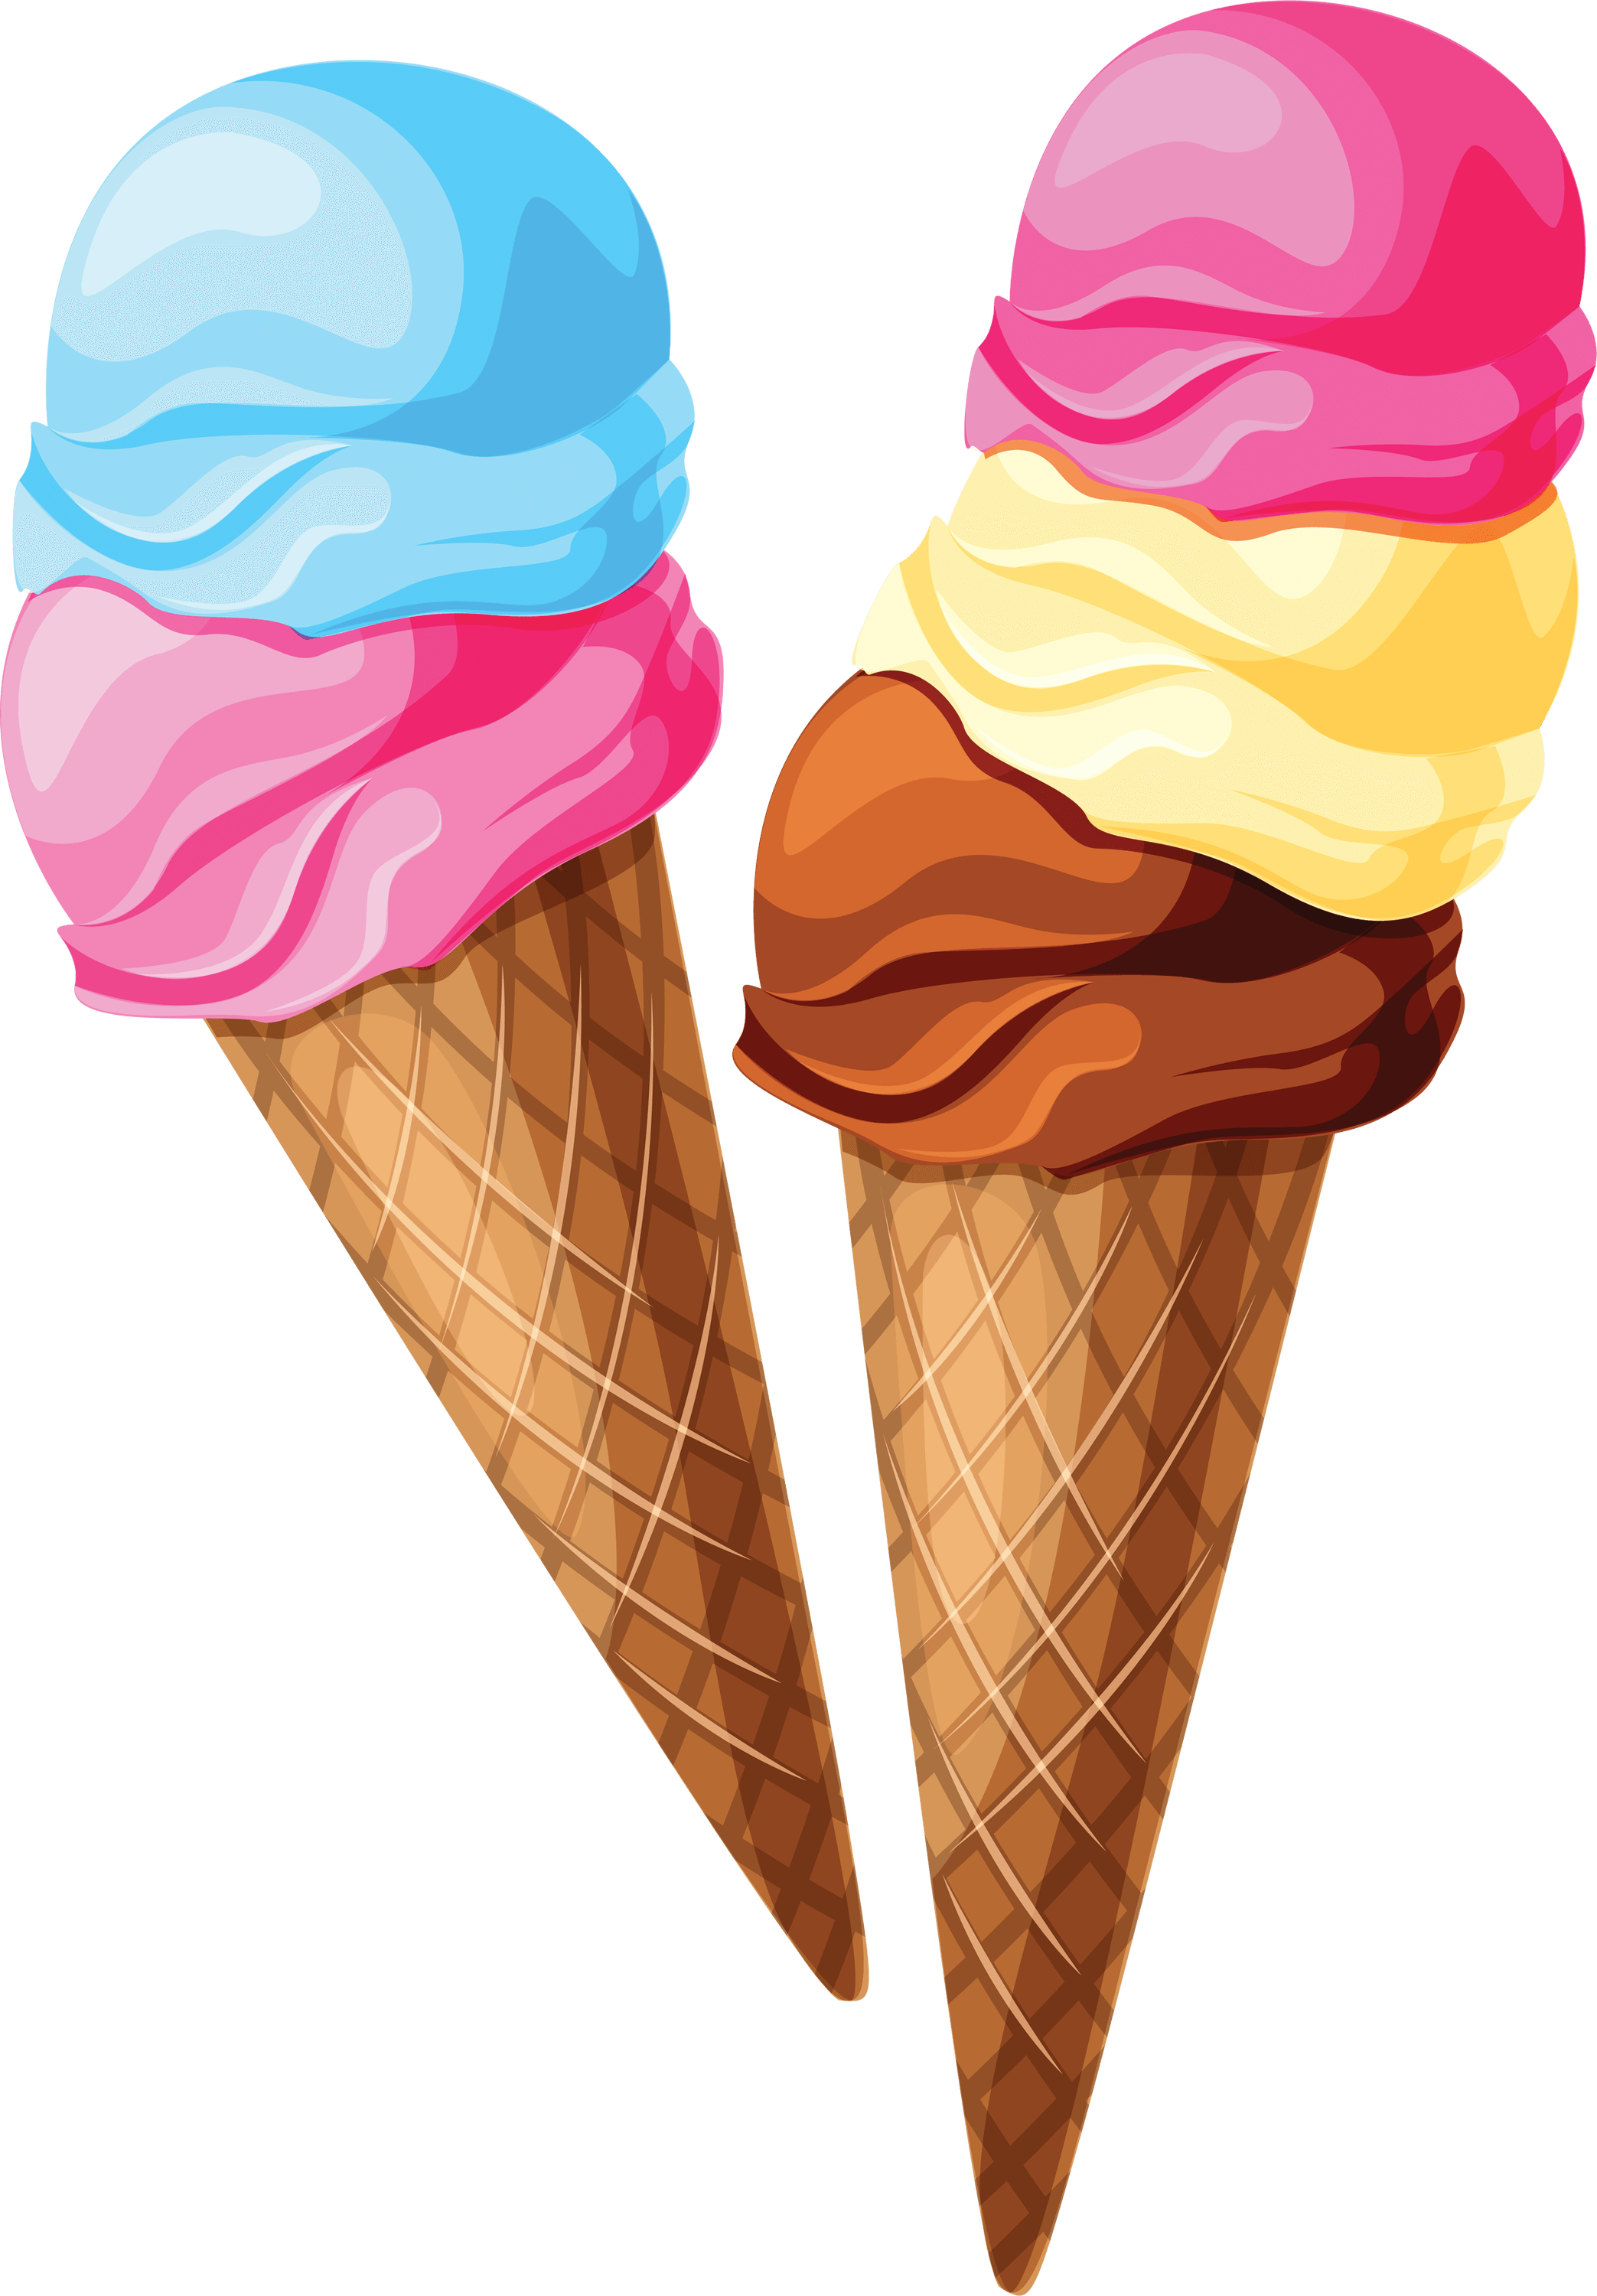 Cliparts png image purepng. Taste clipart ice cream